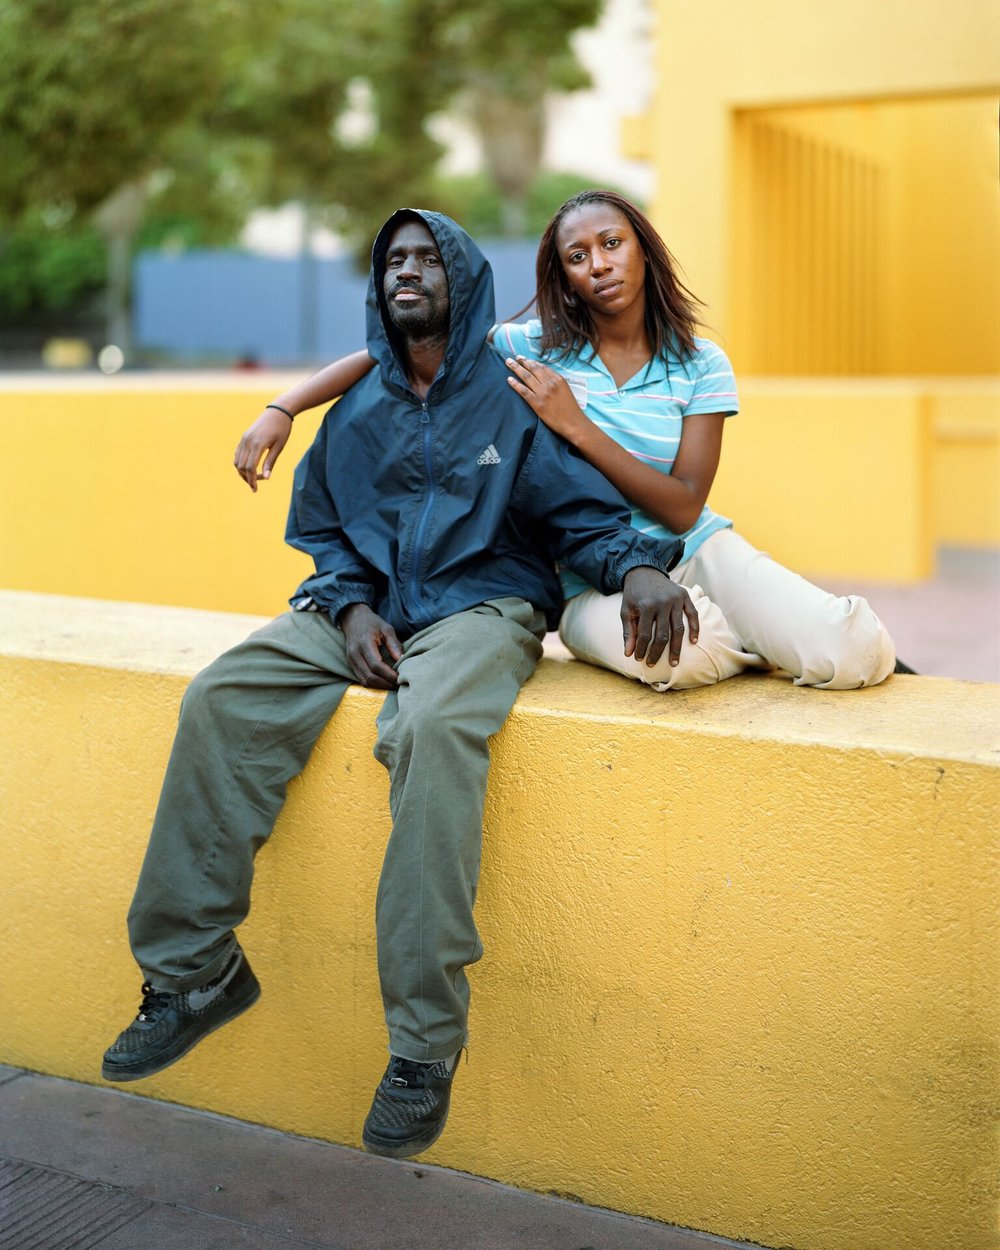 Richard Renaldi Reginald and Nicole, Los Angeles, CA, 2007, de la série Touching Strangers. Courtesy of the artist